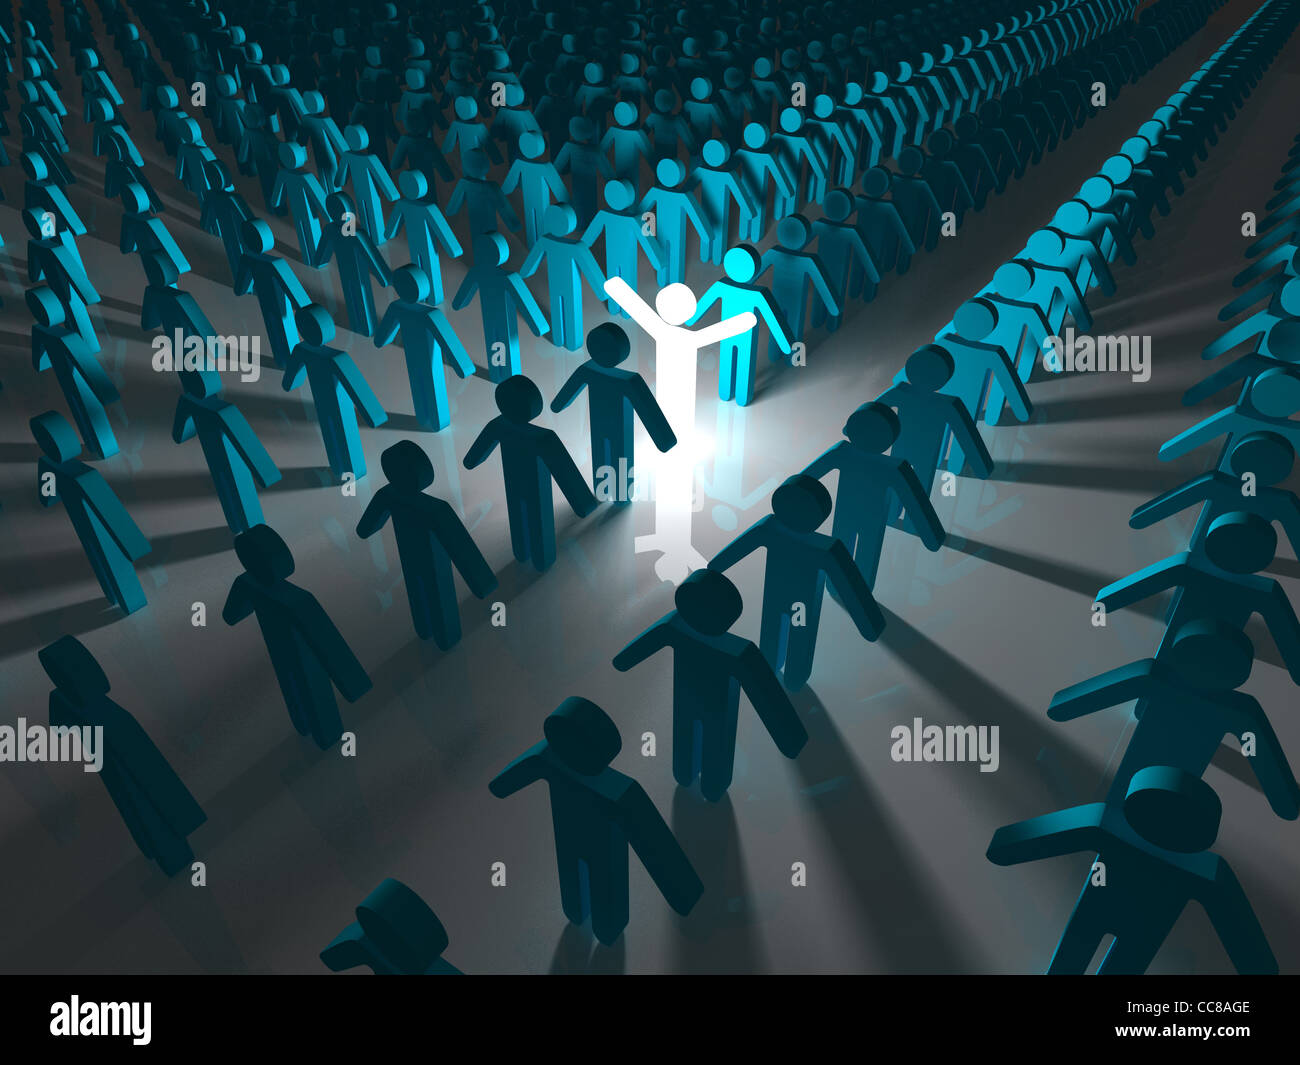 Stand Out From The Crowd - Stock Image